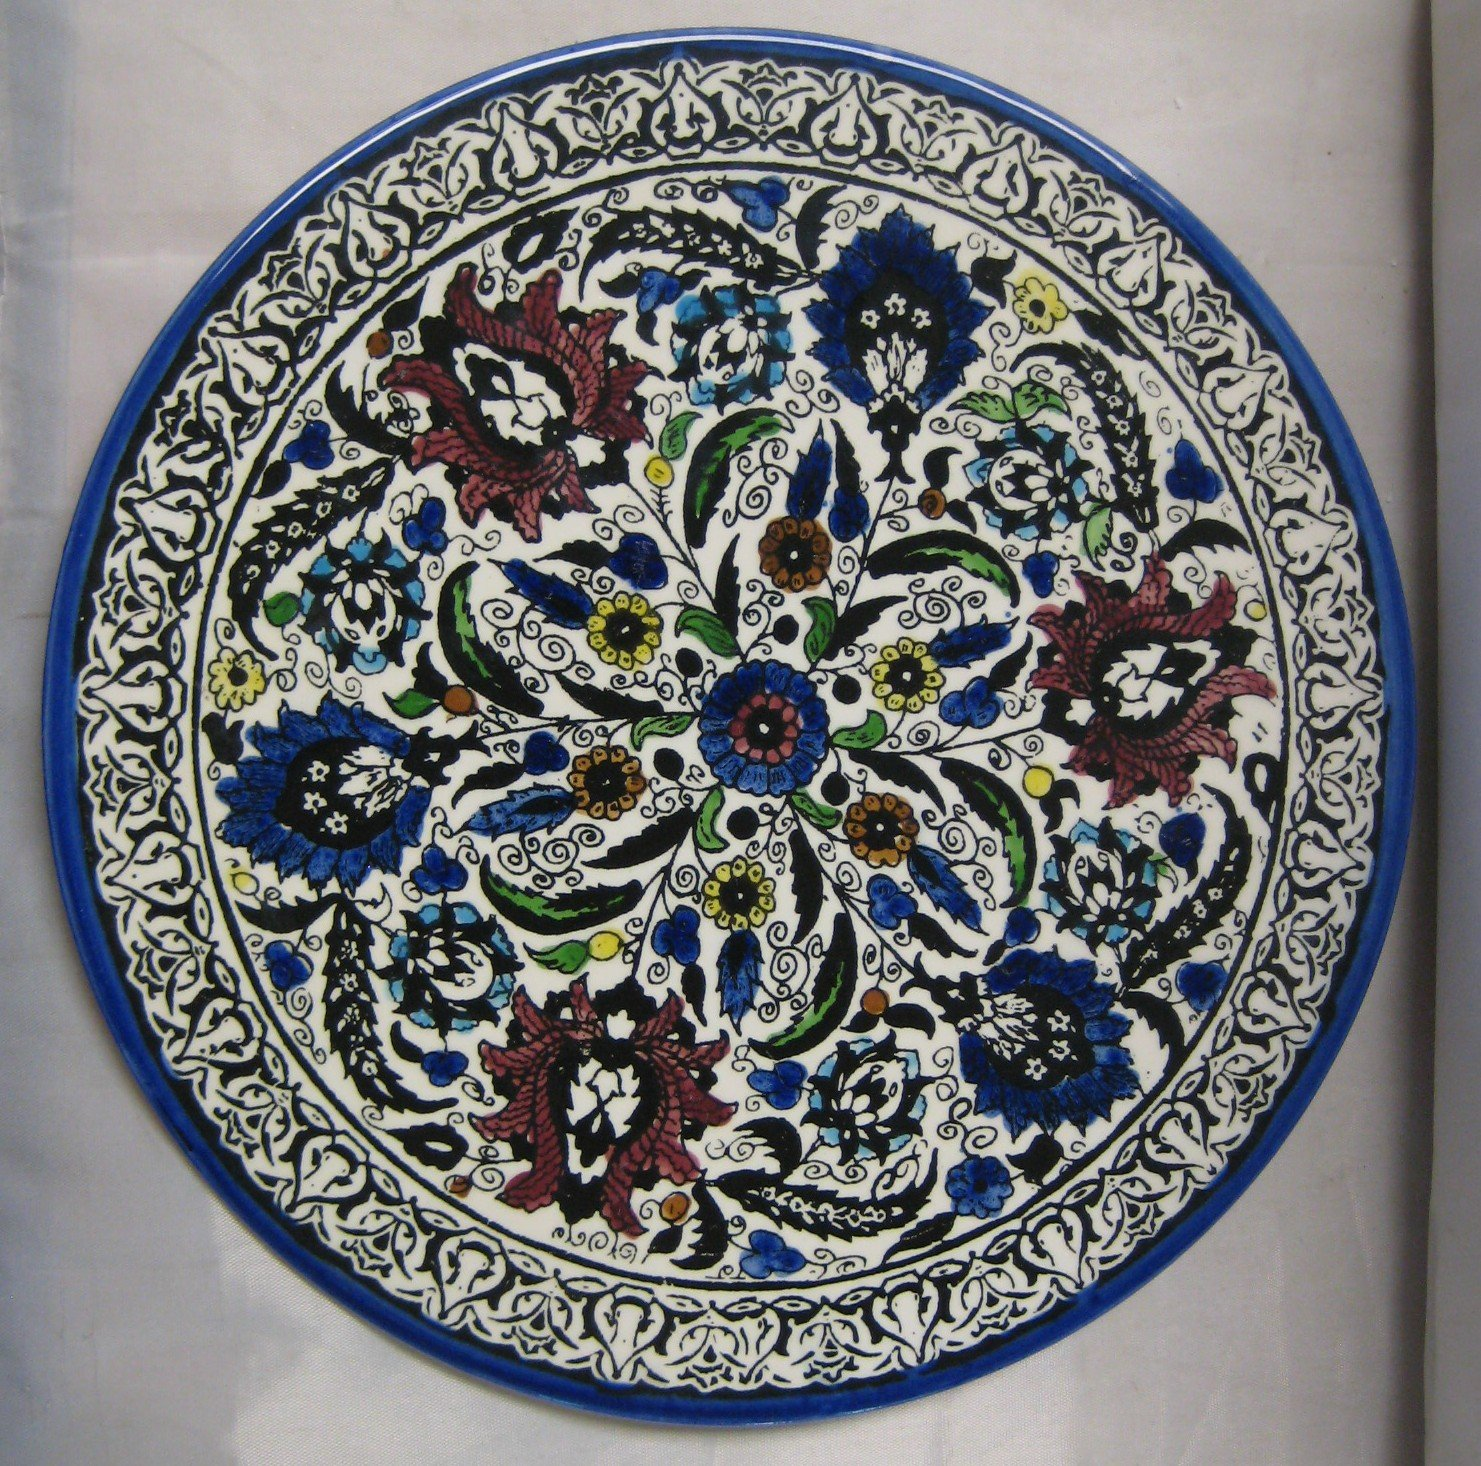 Majolica Large Hand Painted Tile Plate Ceramic Wall Hanging